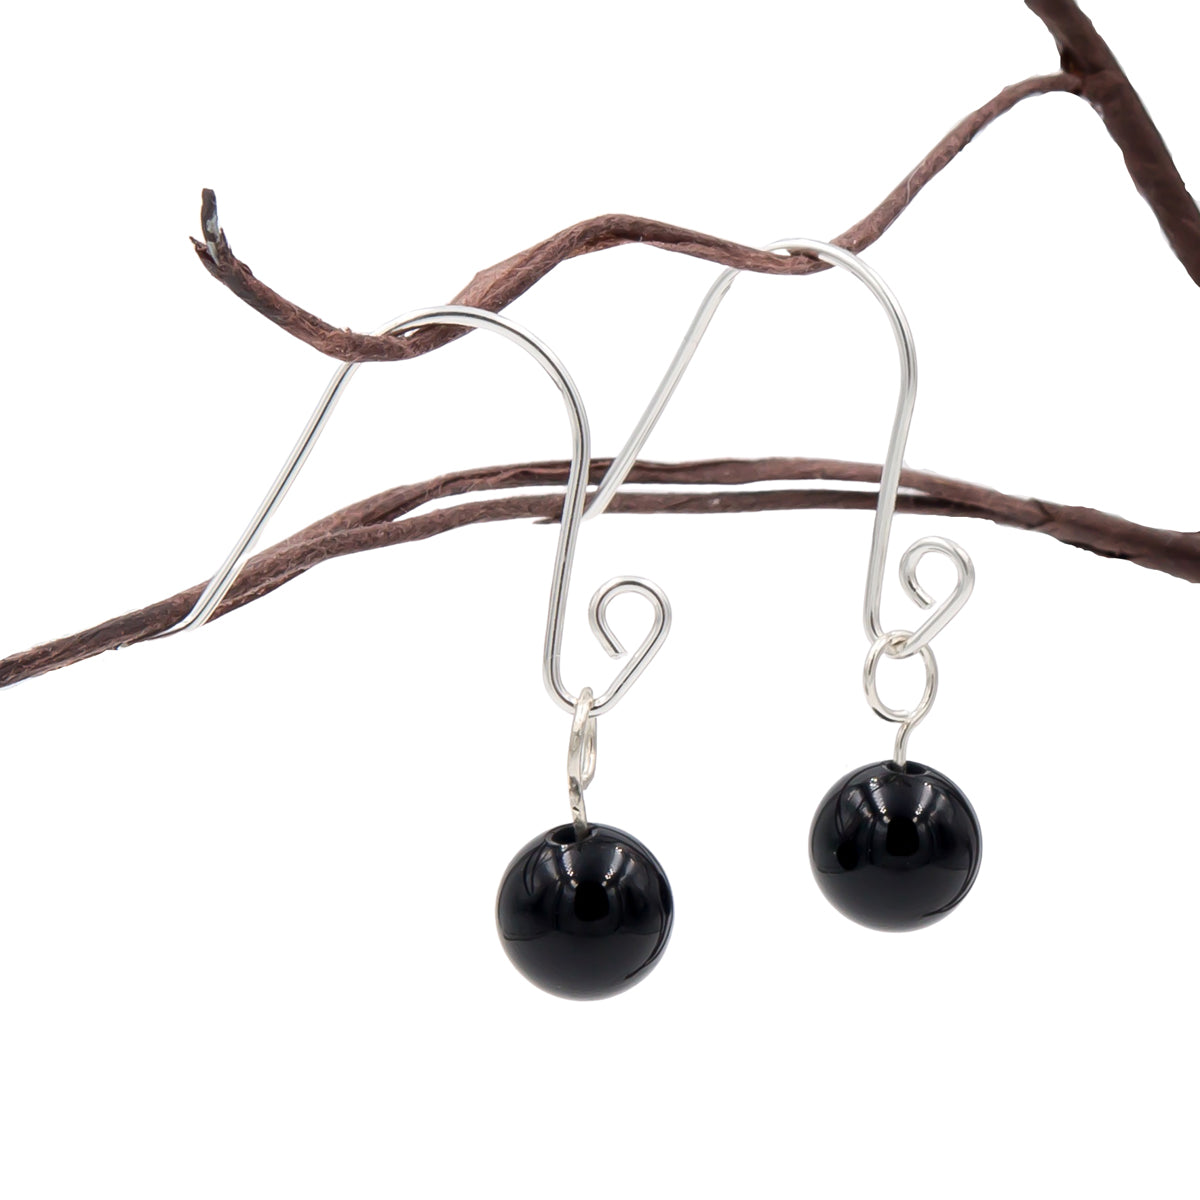 Handmade Onyx Spiral Loops Interchangeable Sterling Silver Earrings